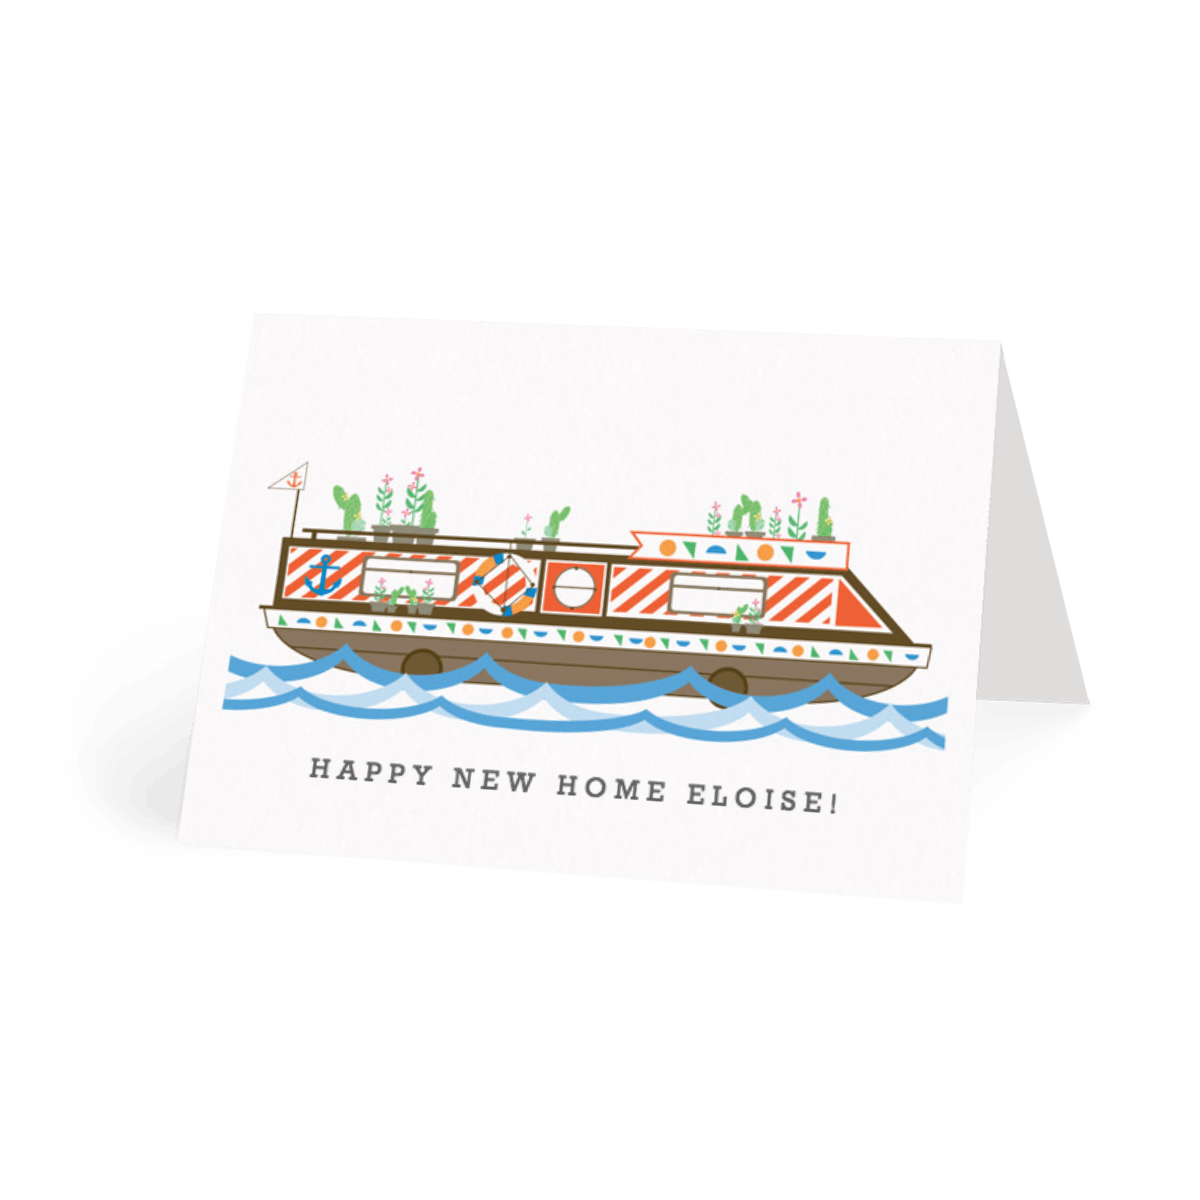 Https%3a%2f%2fwww.papier.com%2fproduct image%2f5433%2f14%2fstriped houseboat 1414 avant 1458845230.png?ixlib=rb 1.1